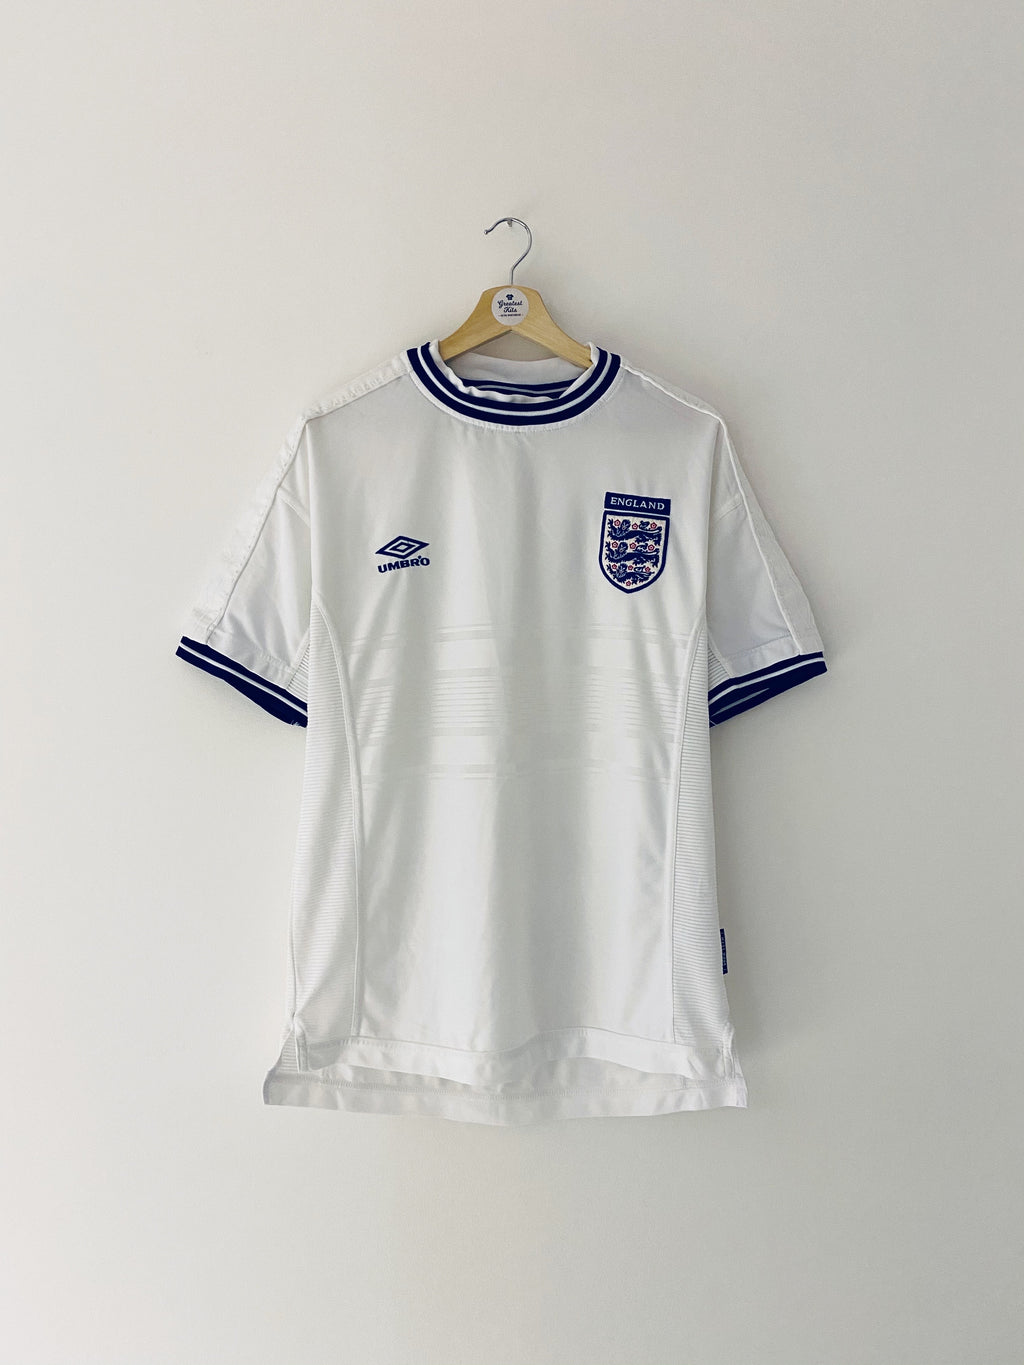 1999/01 England Home Shirt (M) 9/10